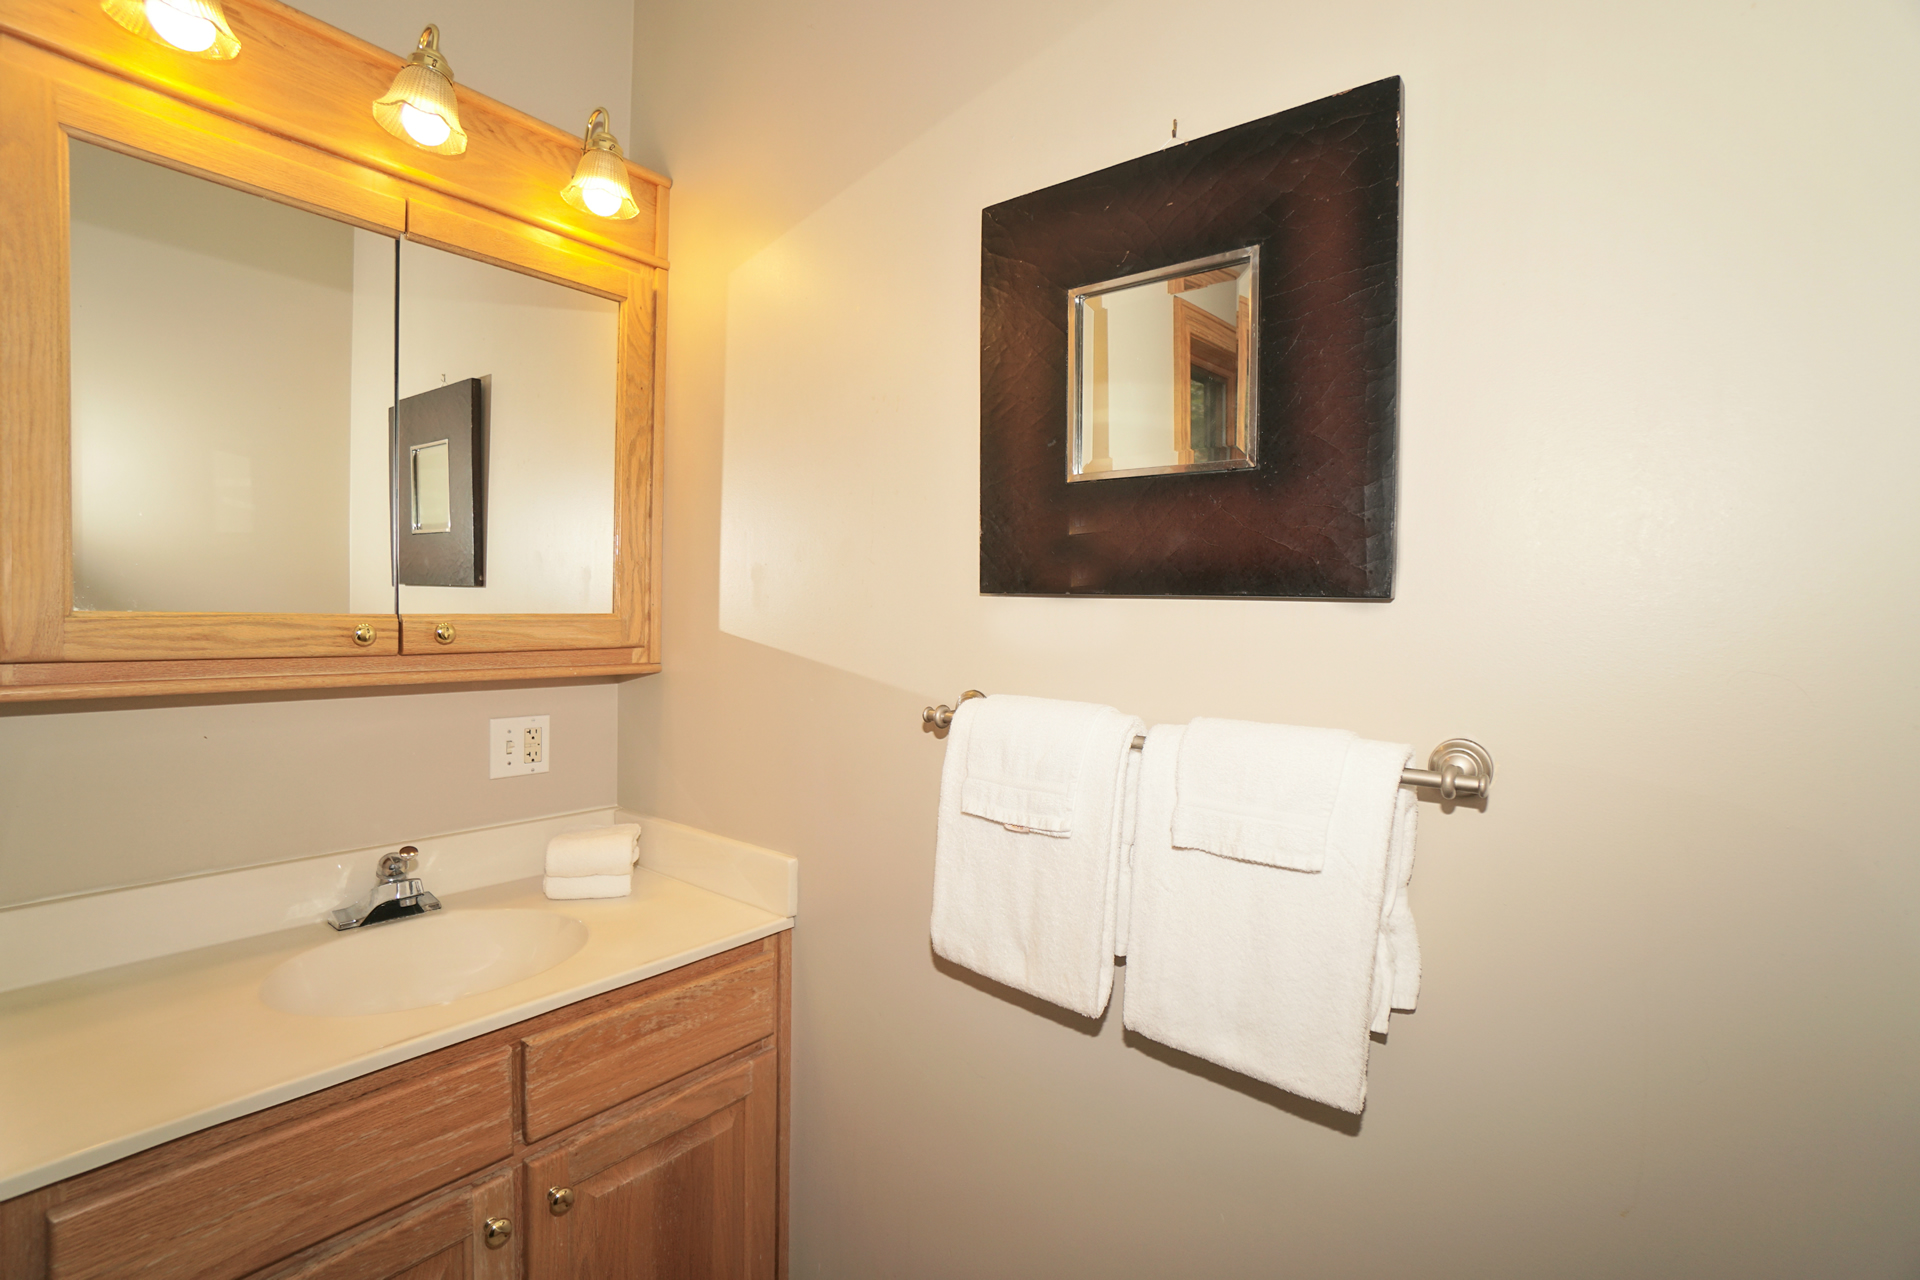 Luxury Vacation Getaway Large Bathroom Sink Deep Creek